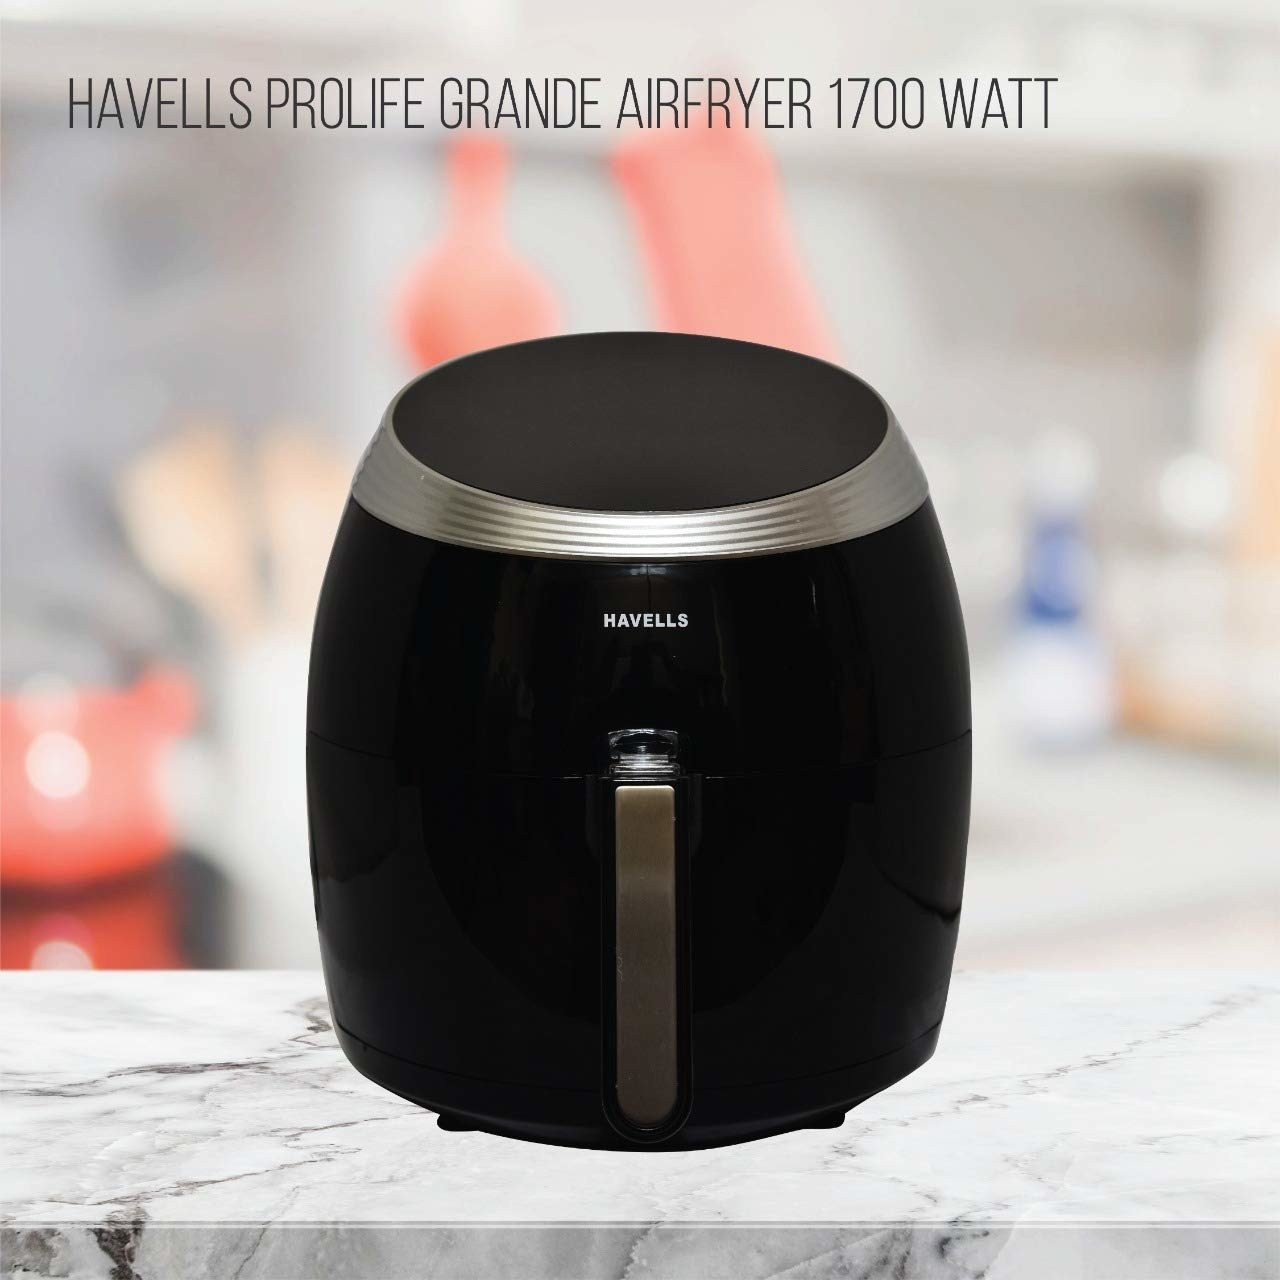 A black air fryer on a table